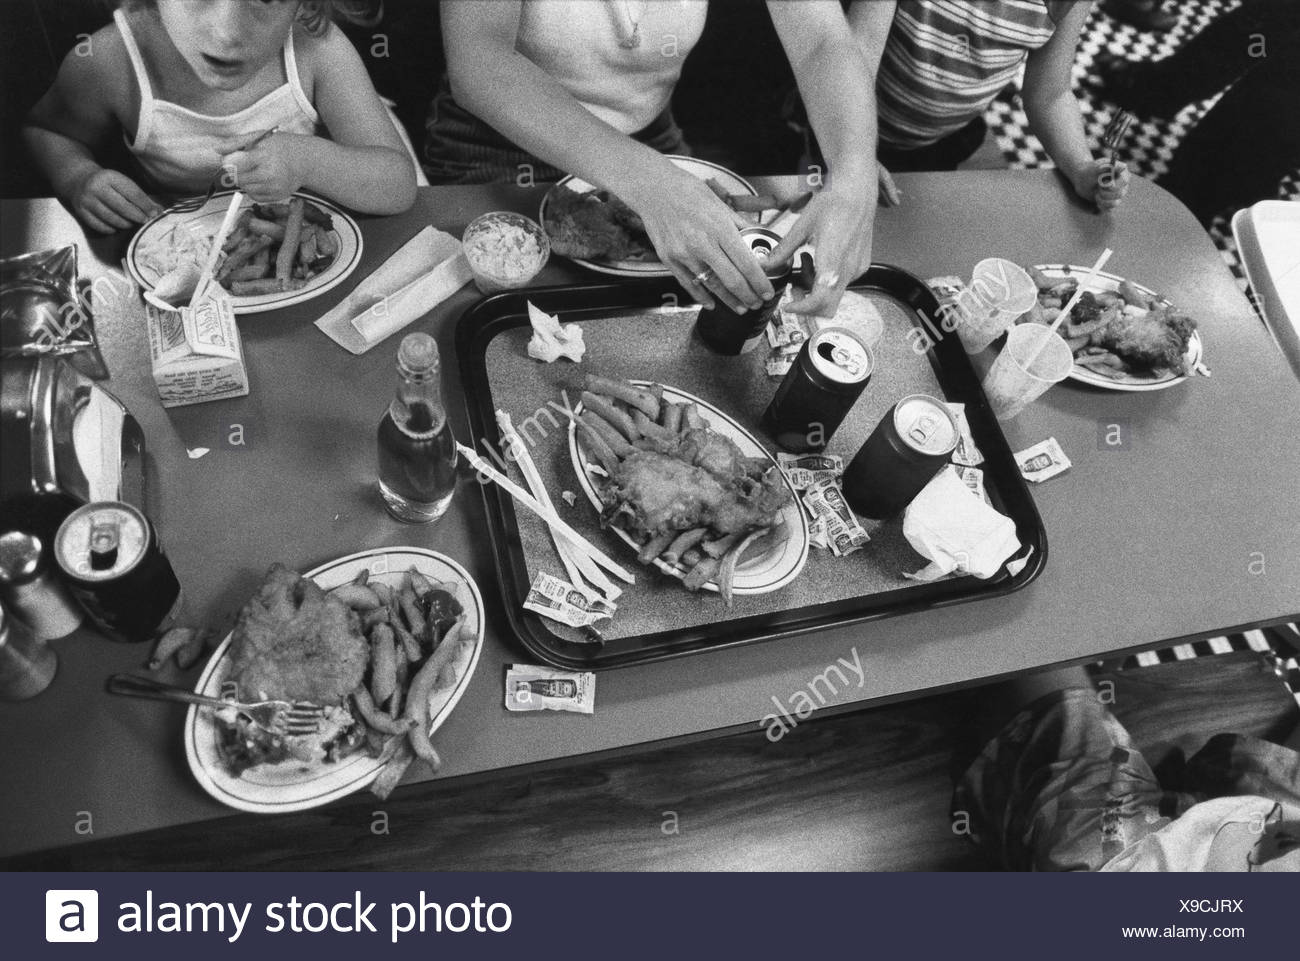 Family having junk food meal - Stock Image